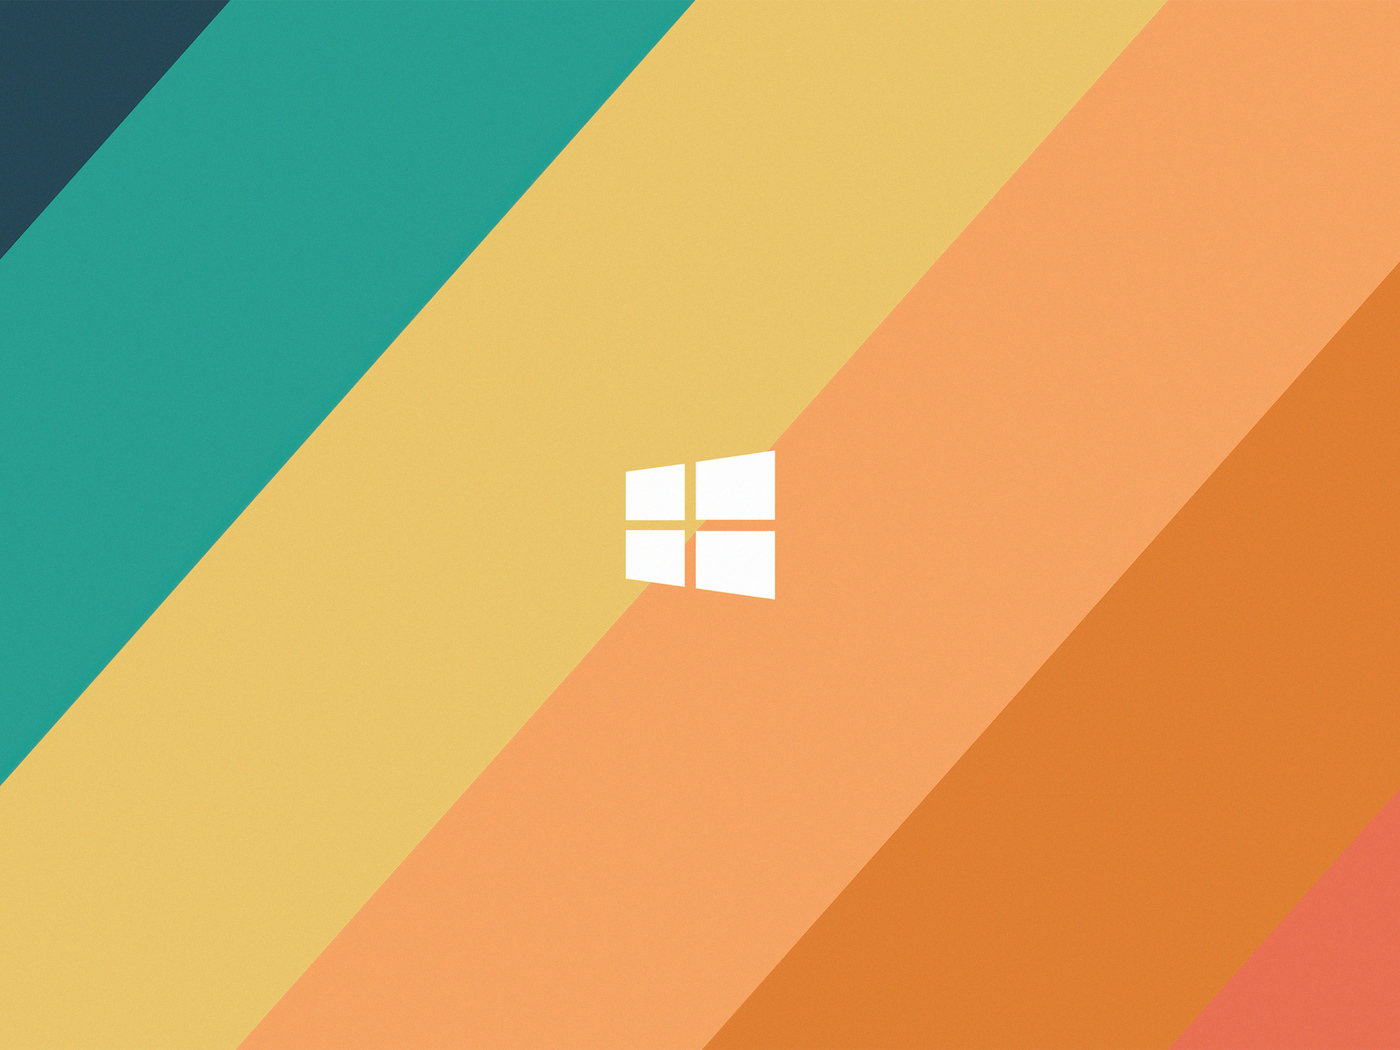 windows-inc-minimalism-4k-nc.jpg